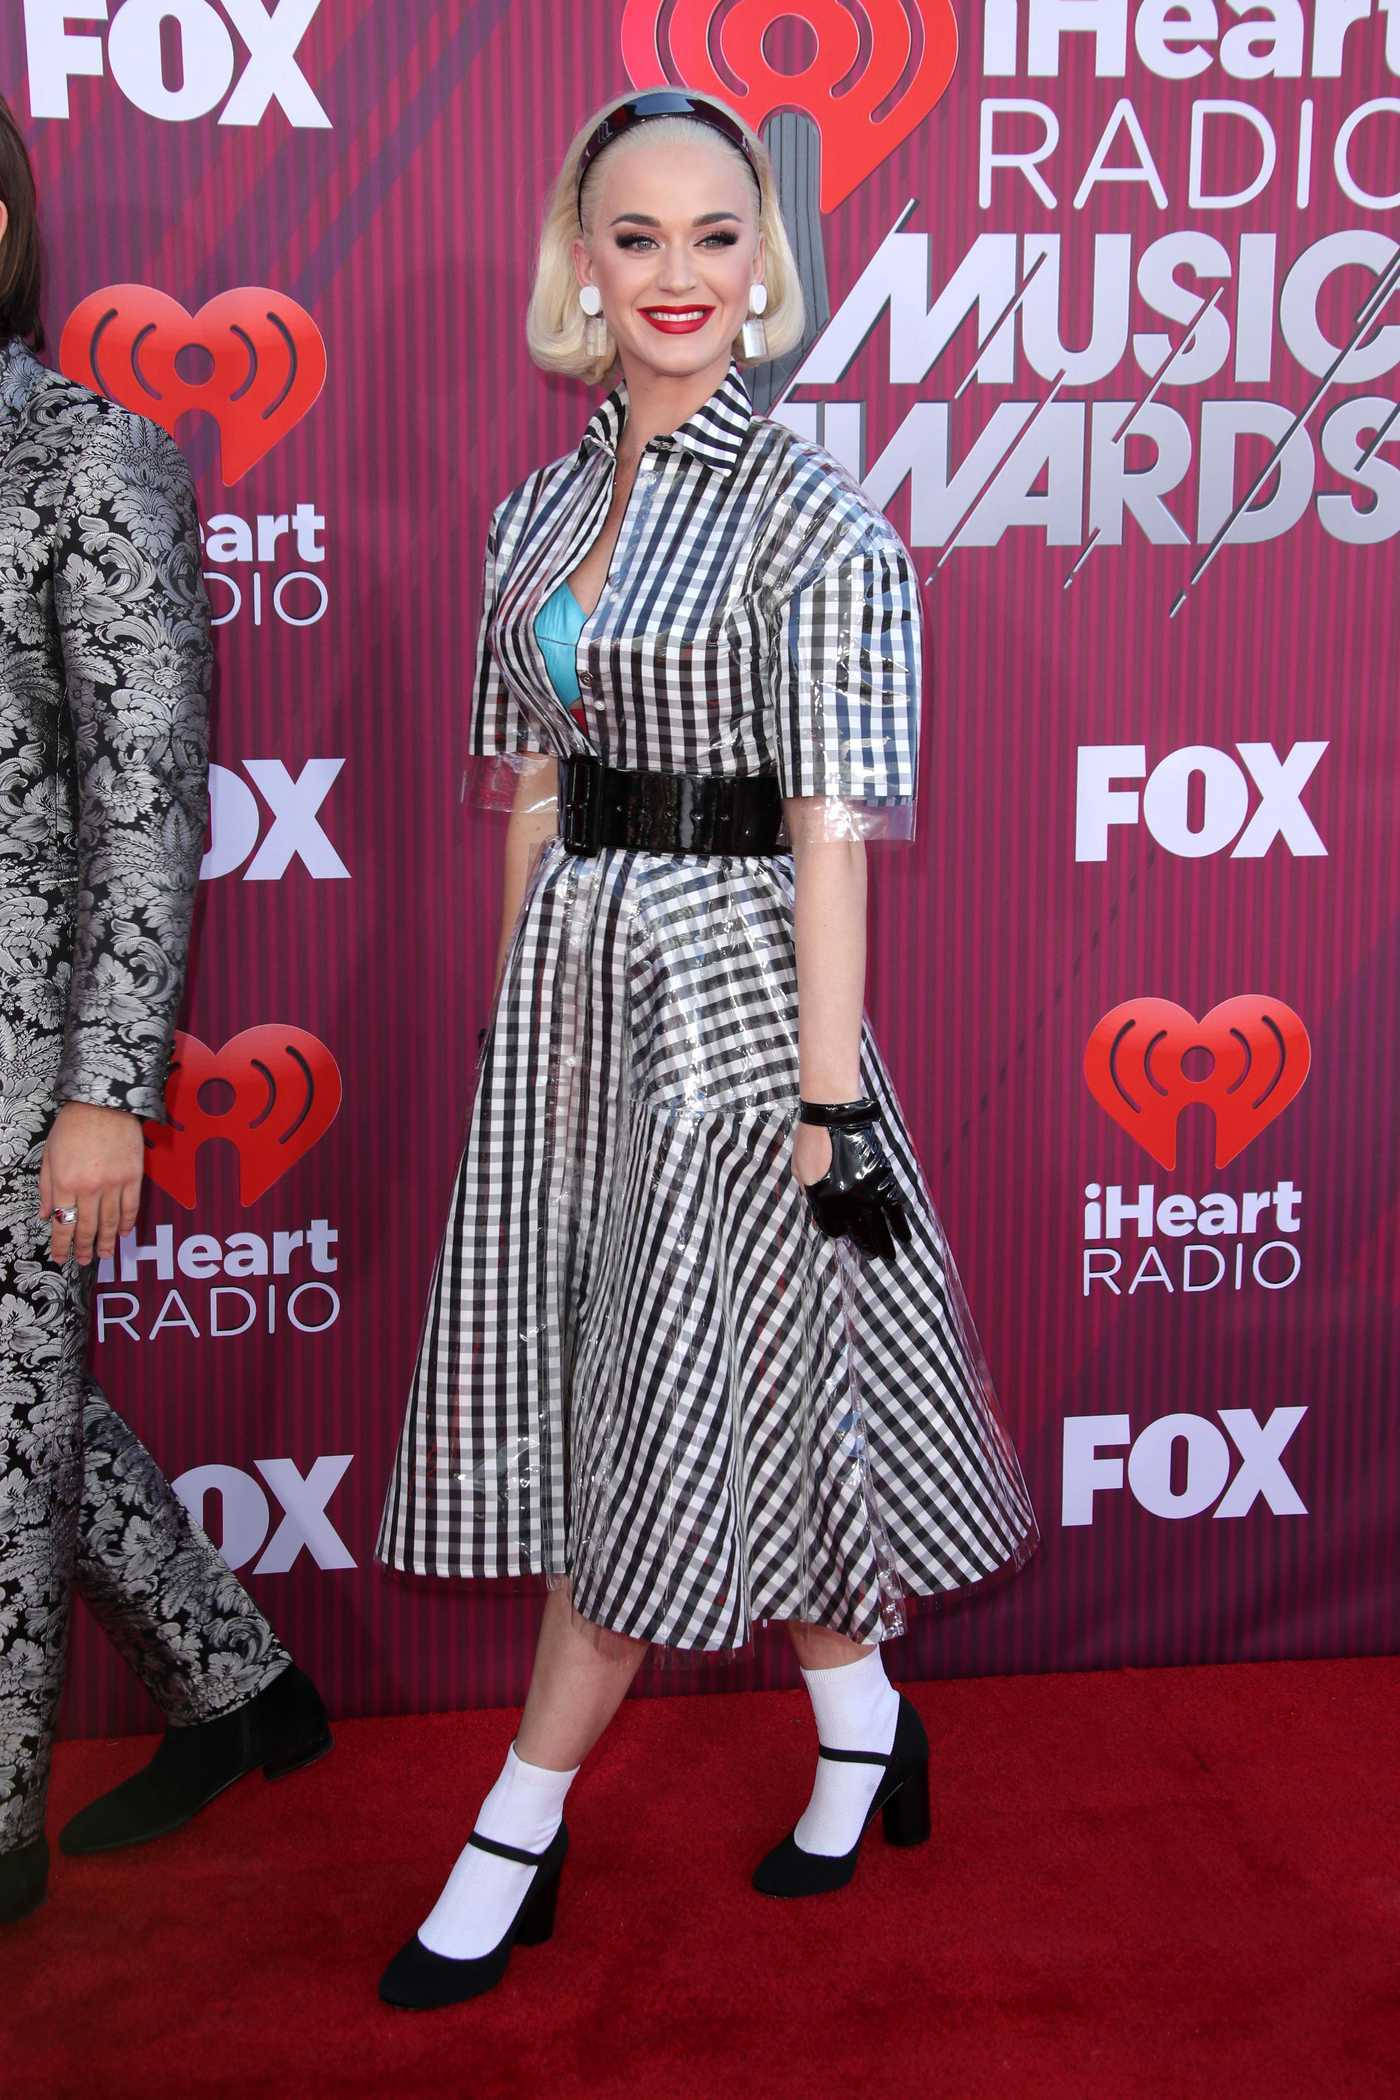 Katy Perry Attends 2019 iHeartRadio Music Awards at Microsoft Theater in LA 03/14/2019